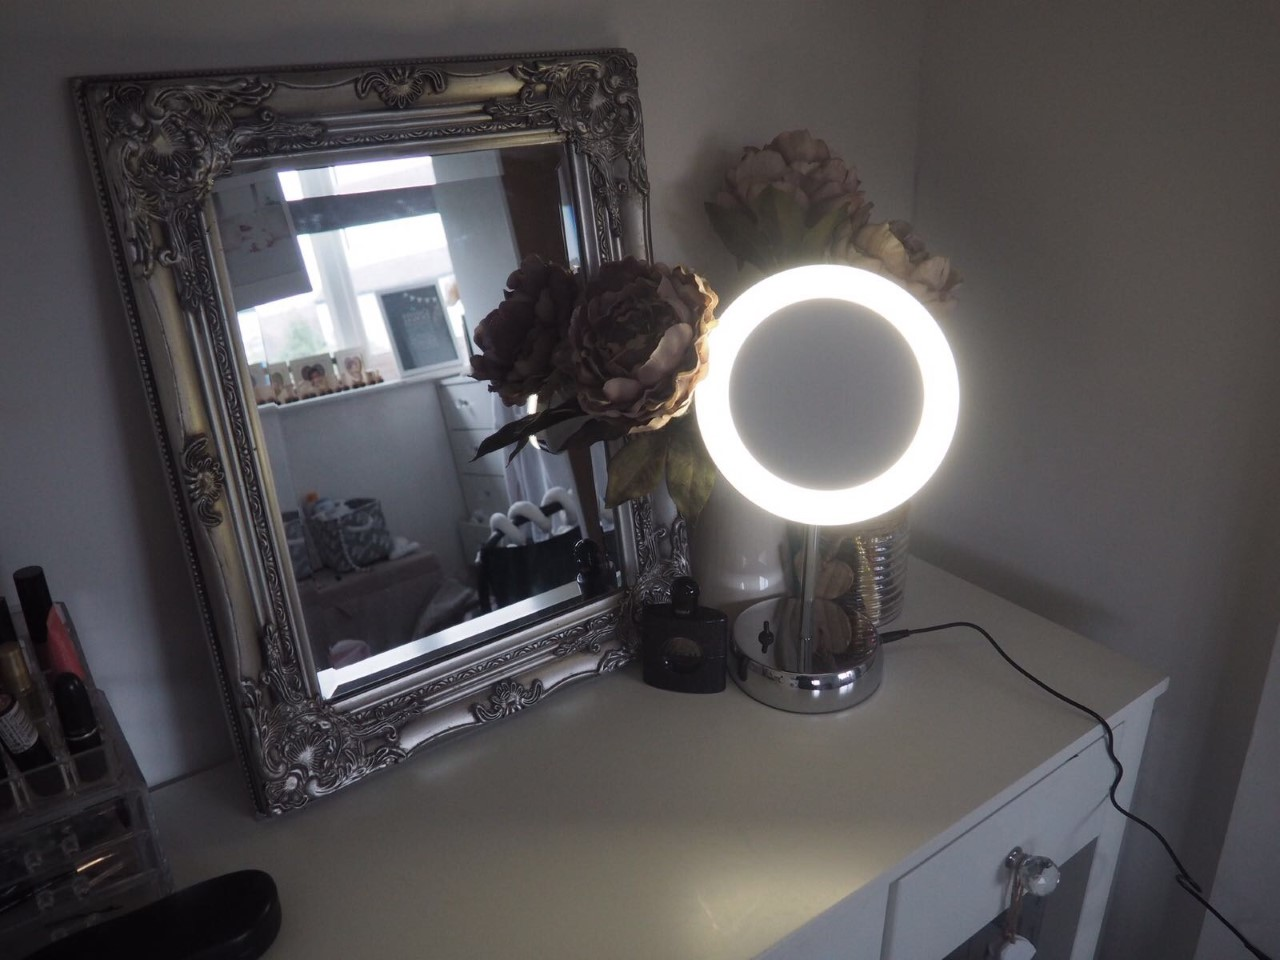 Floral danielle my latest dressing table addition a for Dressing table lamp lighting